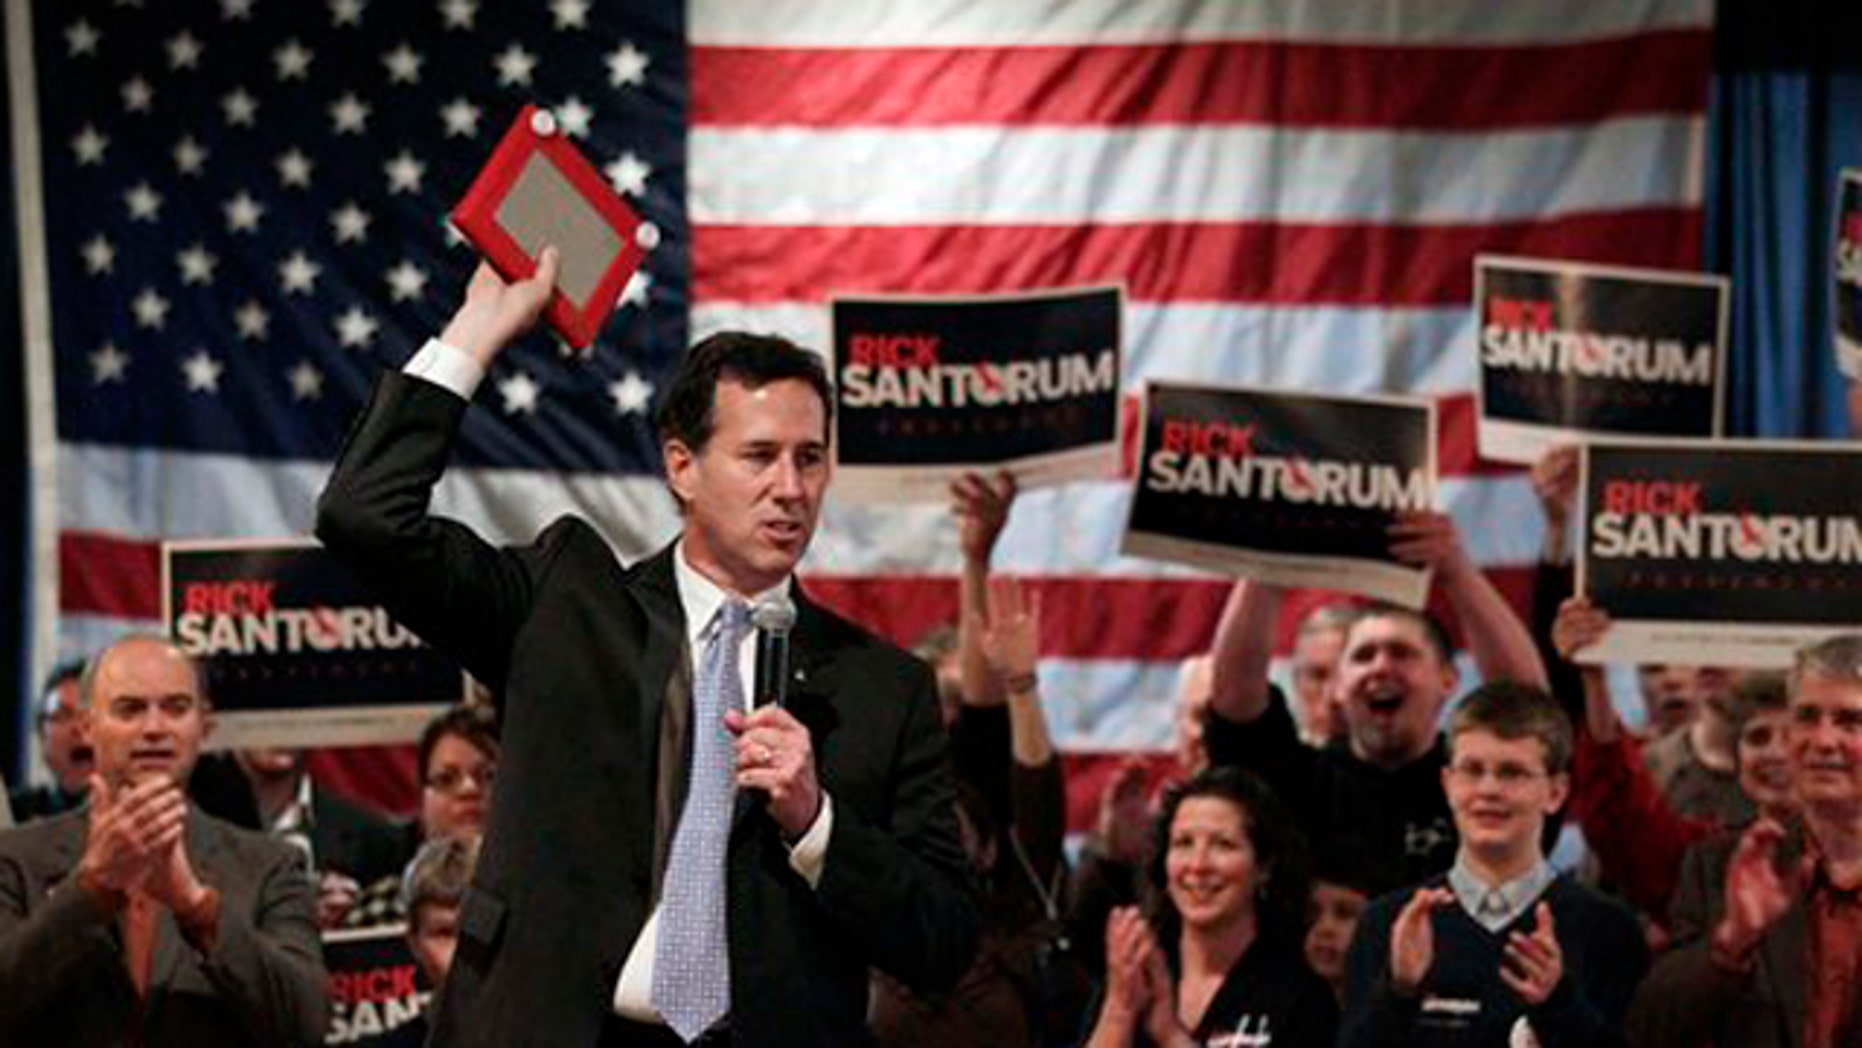 Mar. 24, 2012: Republican presidential candidate, former Pennsylvania Sen. Rick Santorum addresses supporters during a campaign rally in Bellevue, Wis.